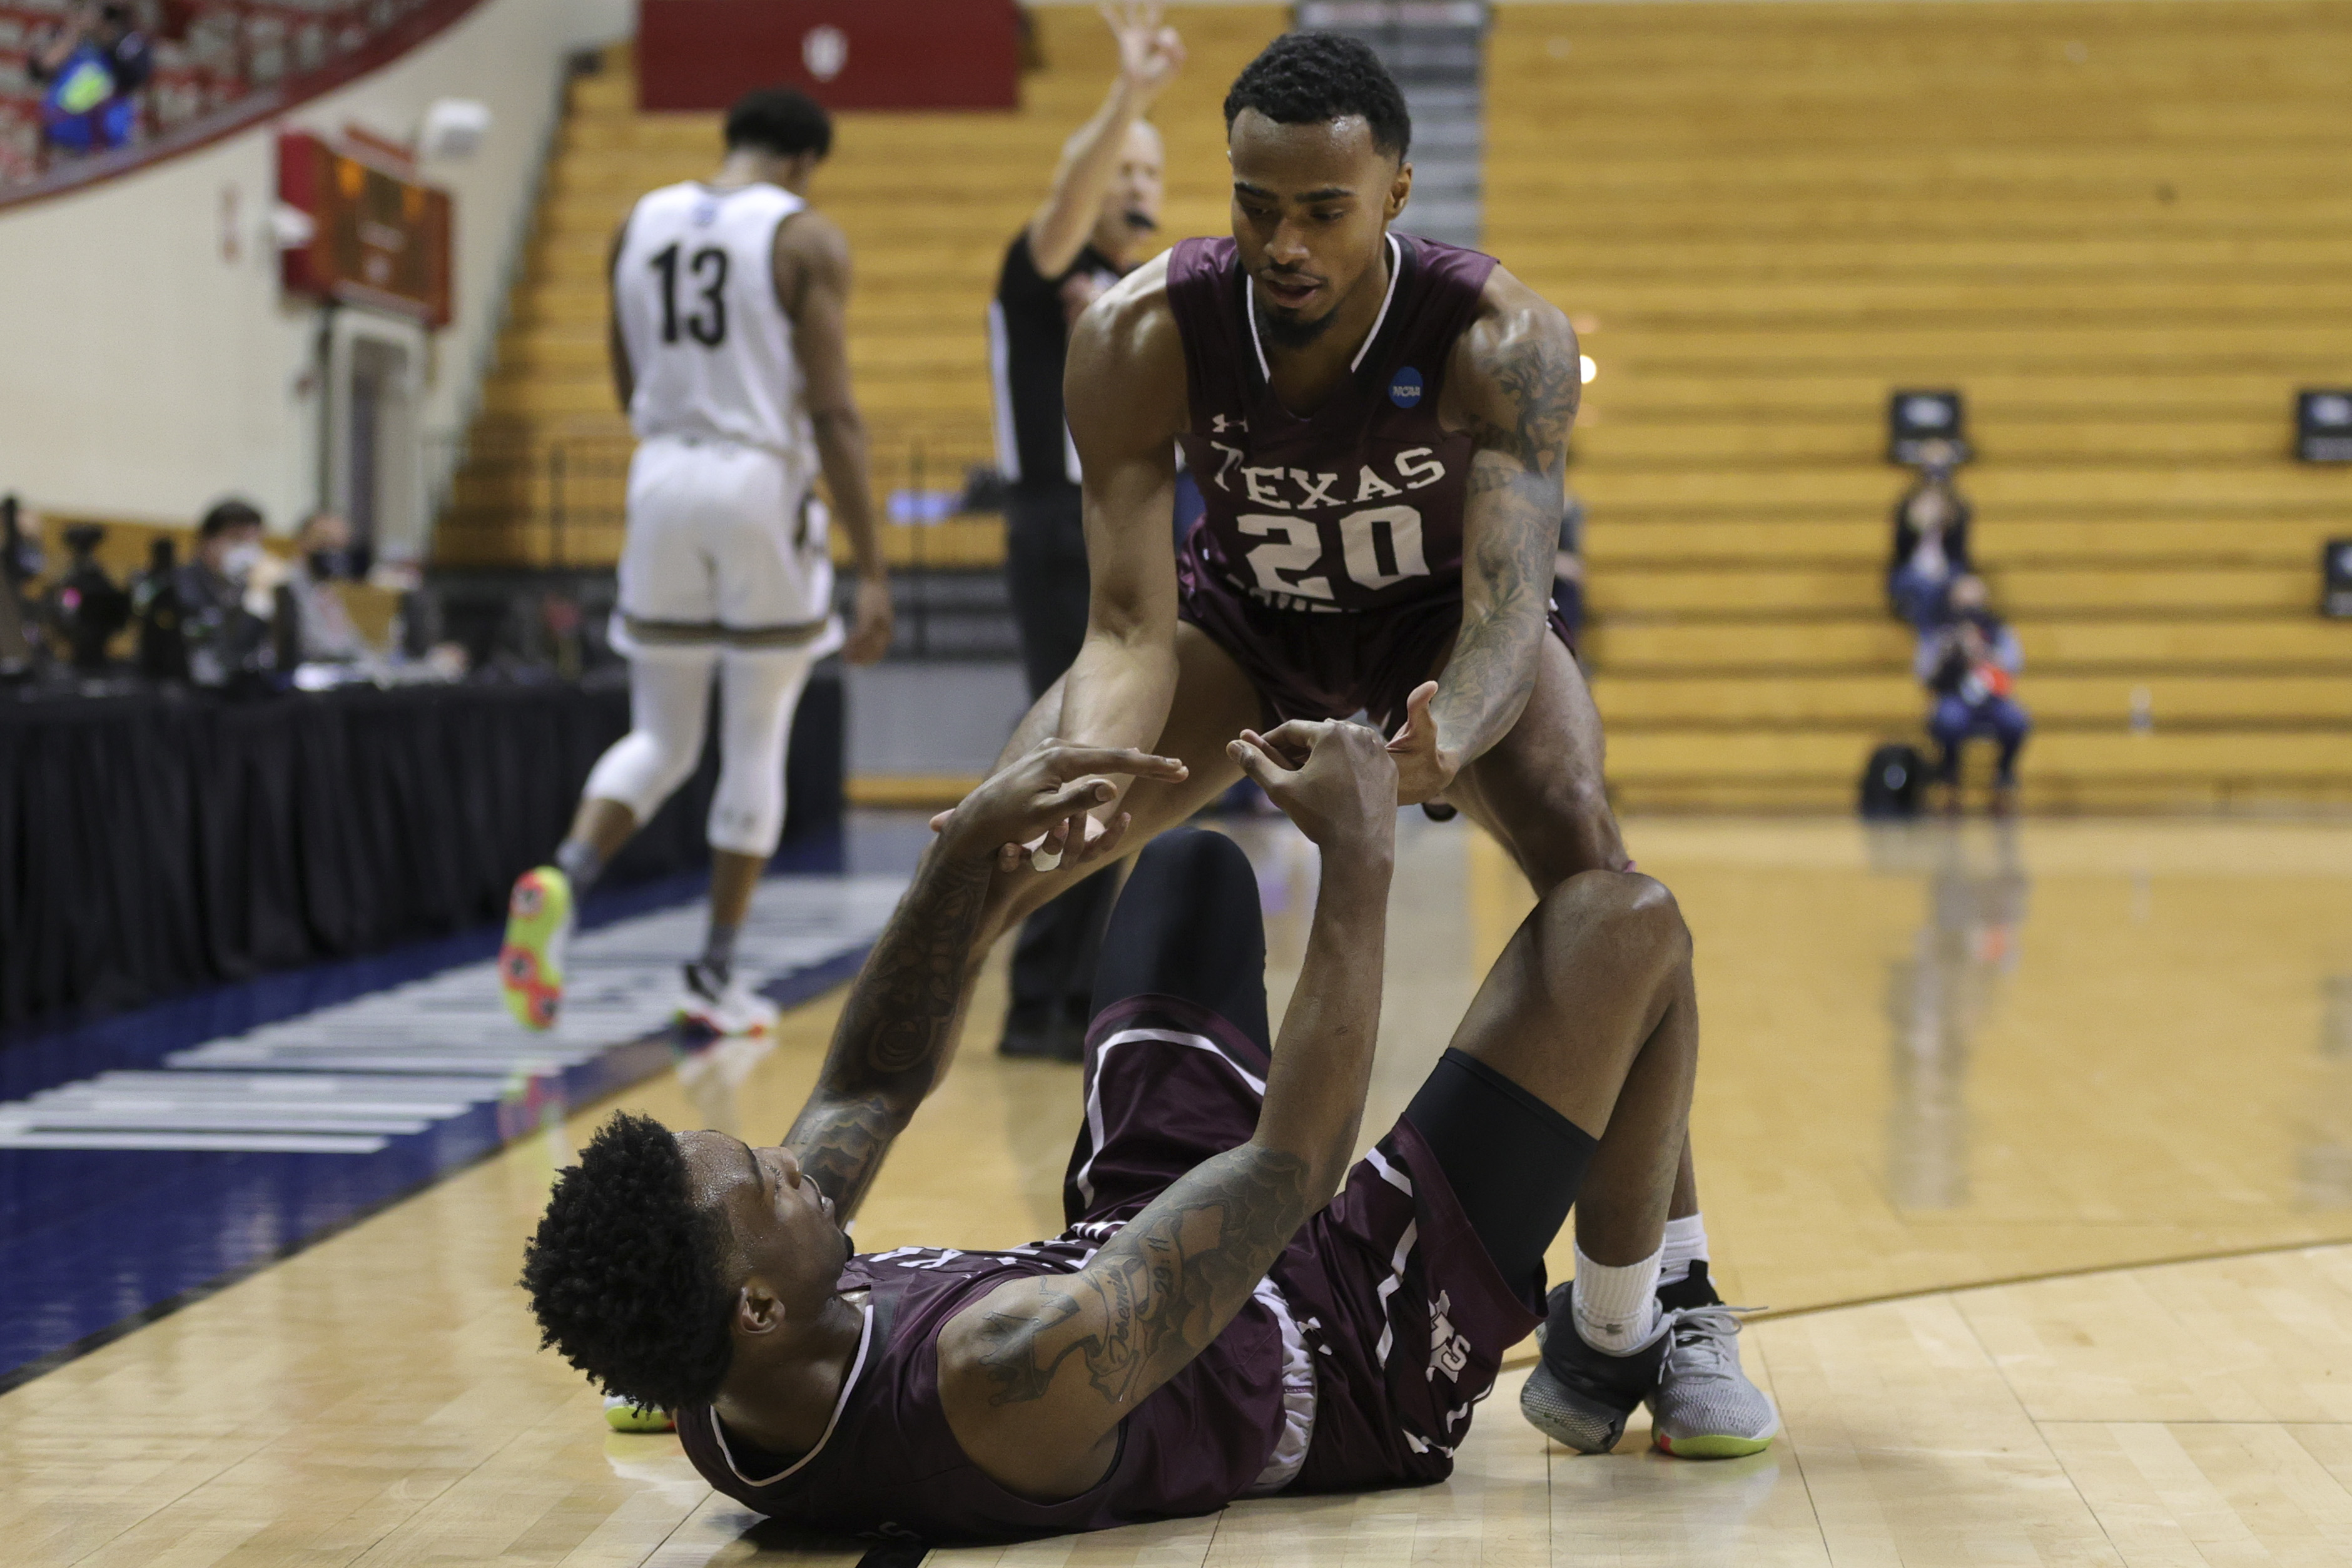 Texas Southern v Mount St. Mary's